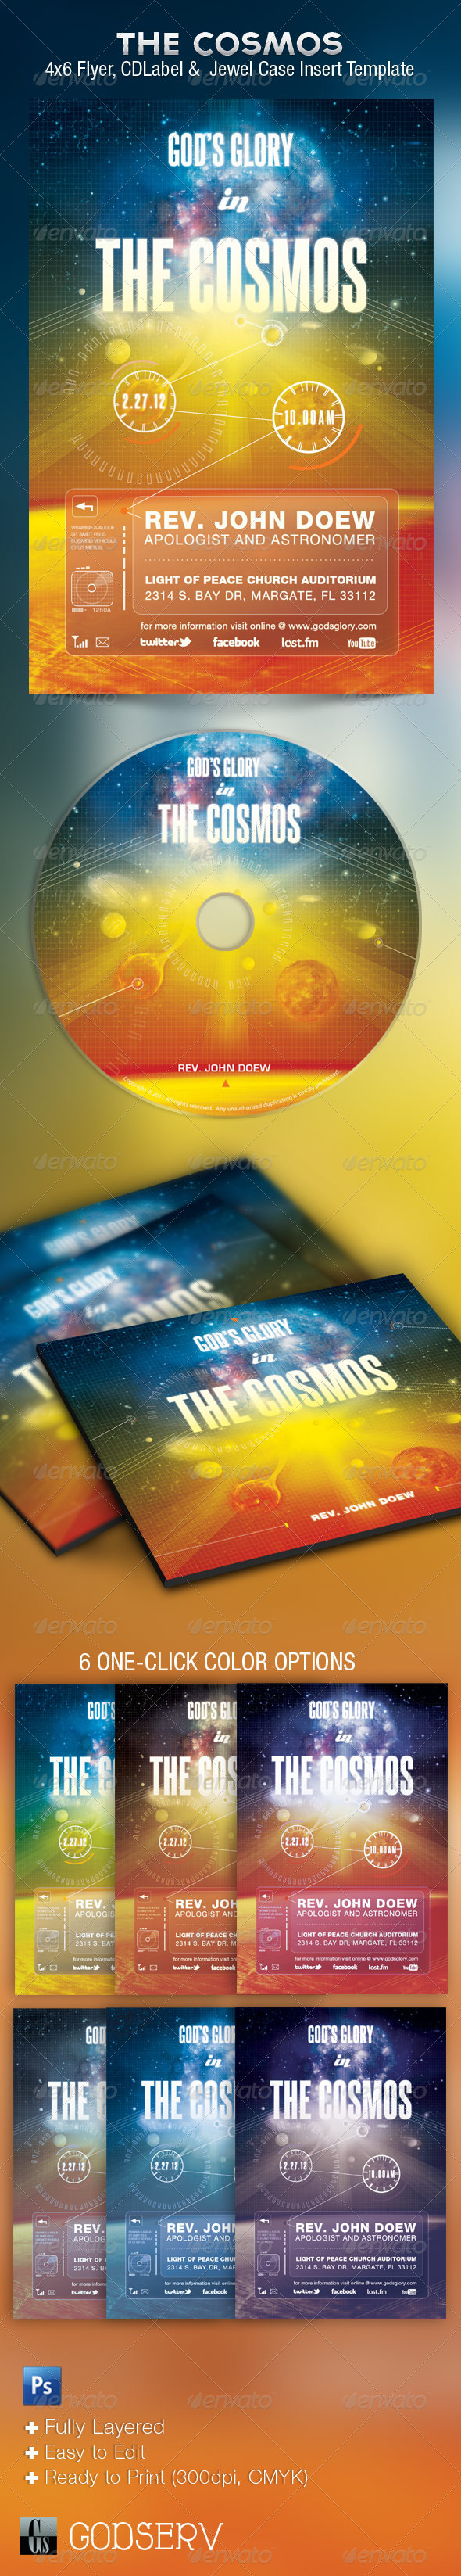 GraphicRiver God's Glory In The Cosmos Church Flyer and CD 1590486